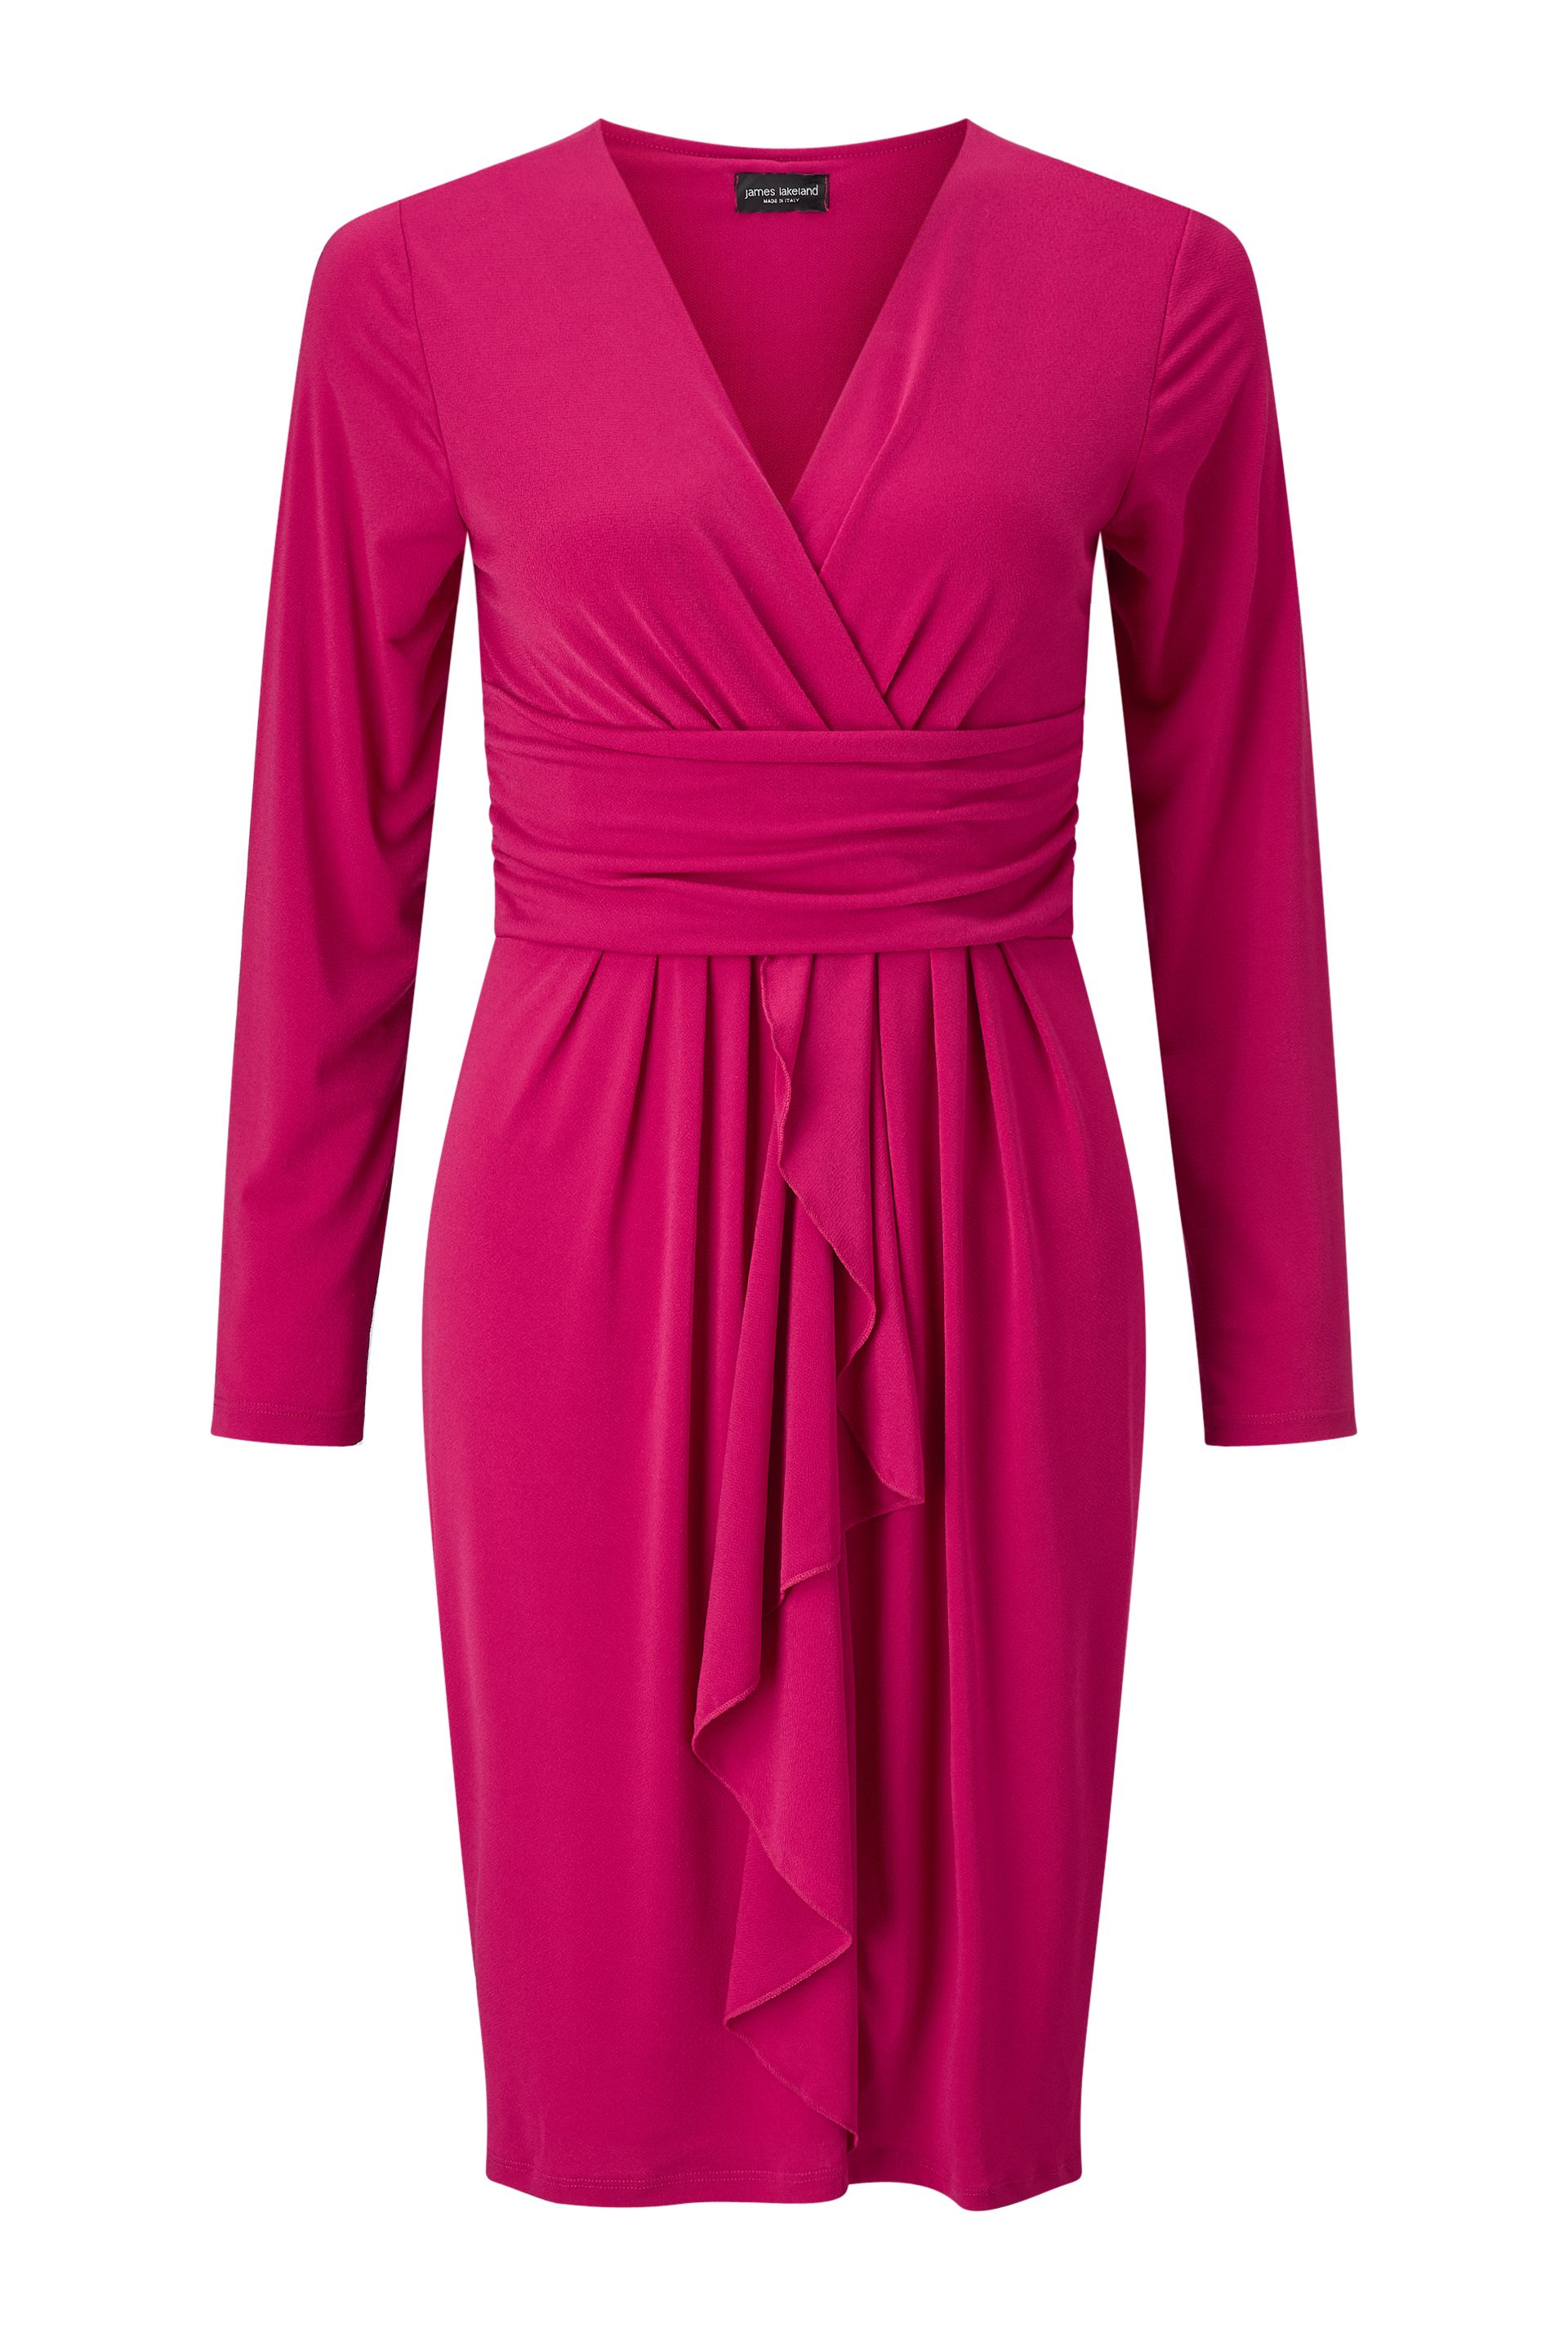 James Lakeland Dress With Ruffle, Wine